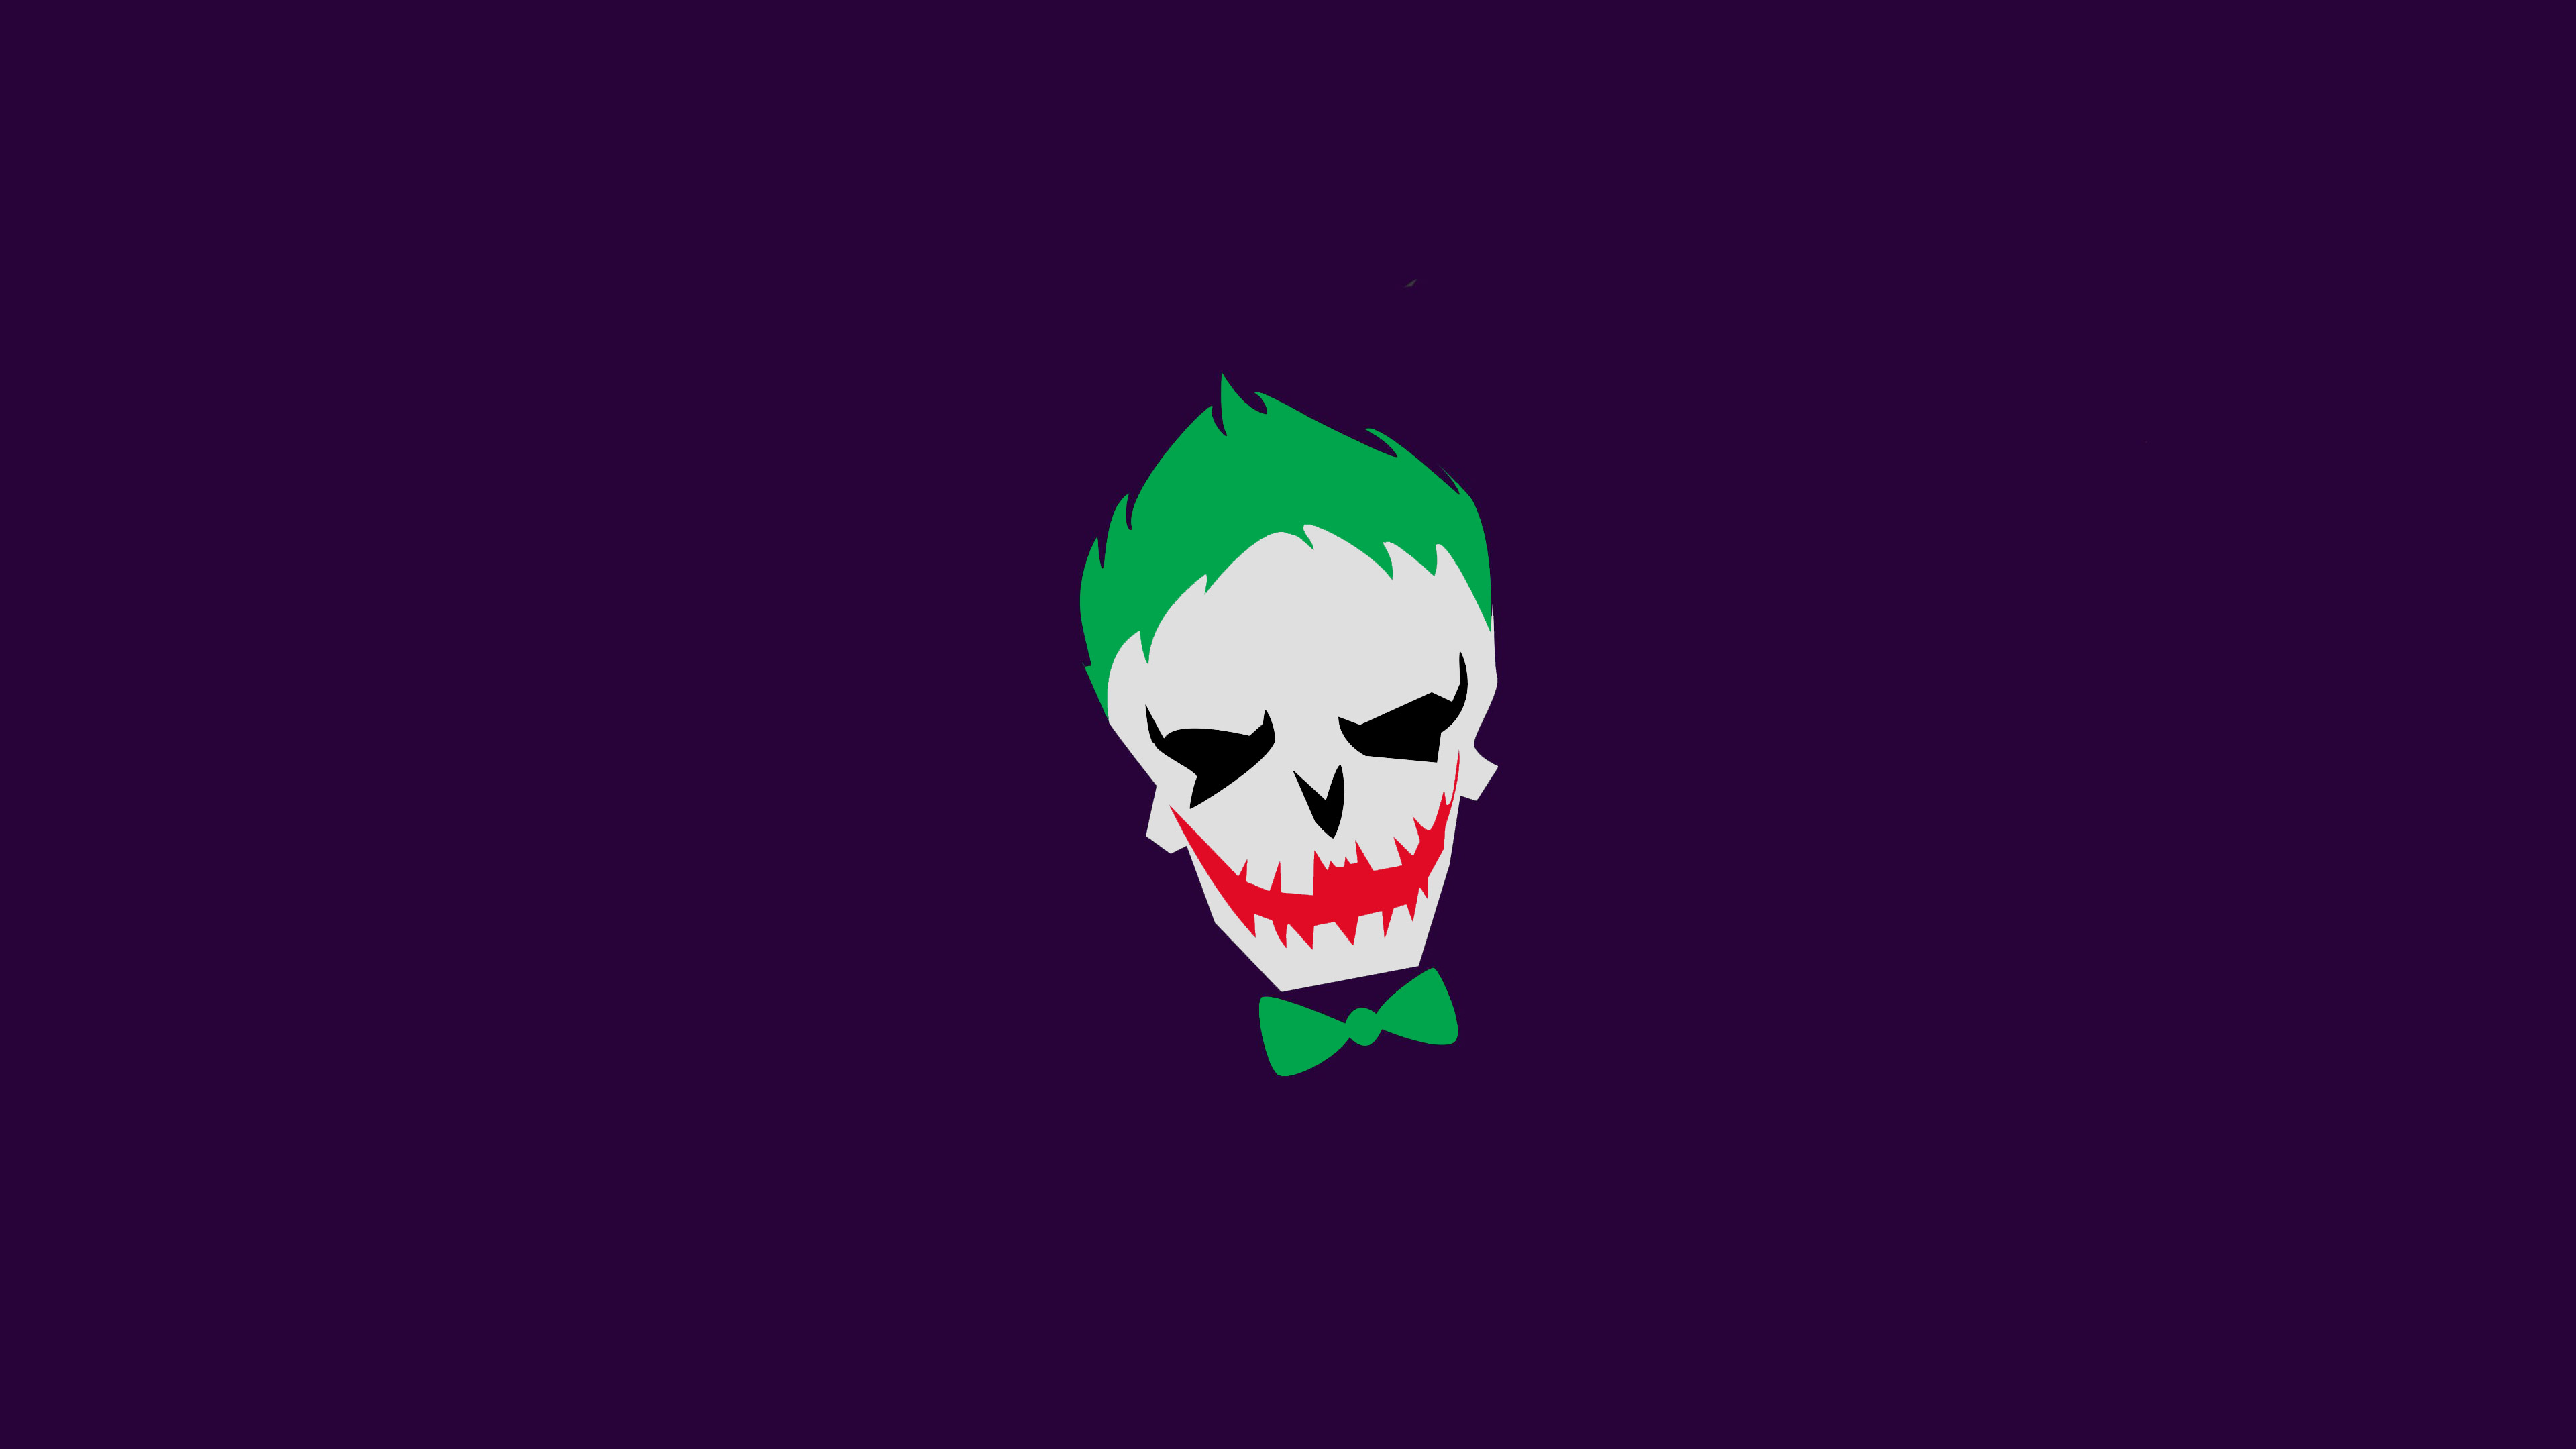 Joker Minimalism Wallpaper Hd Minimalist 4k Wallpapers